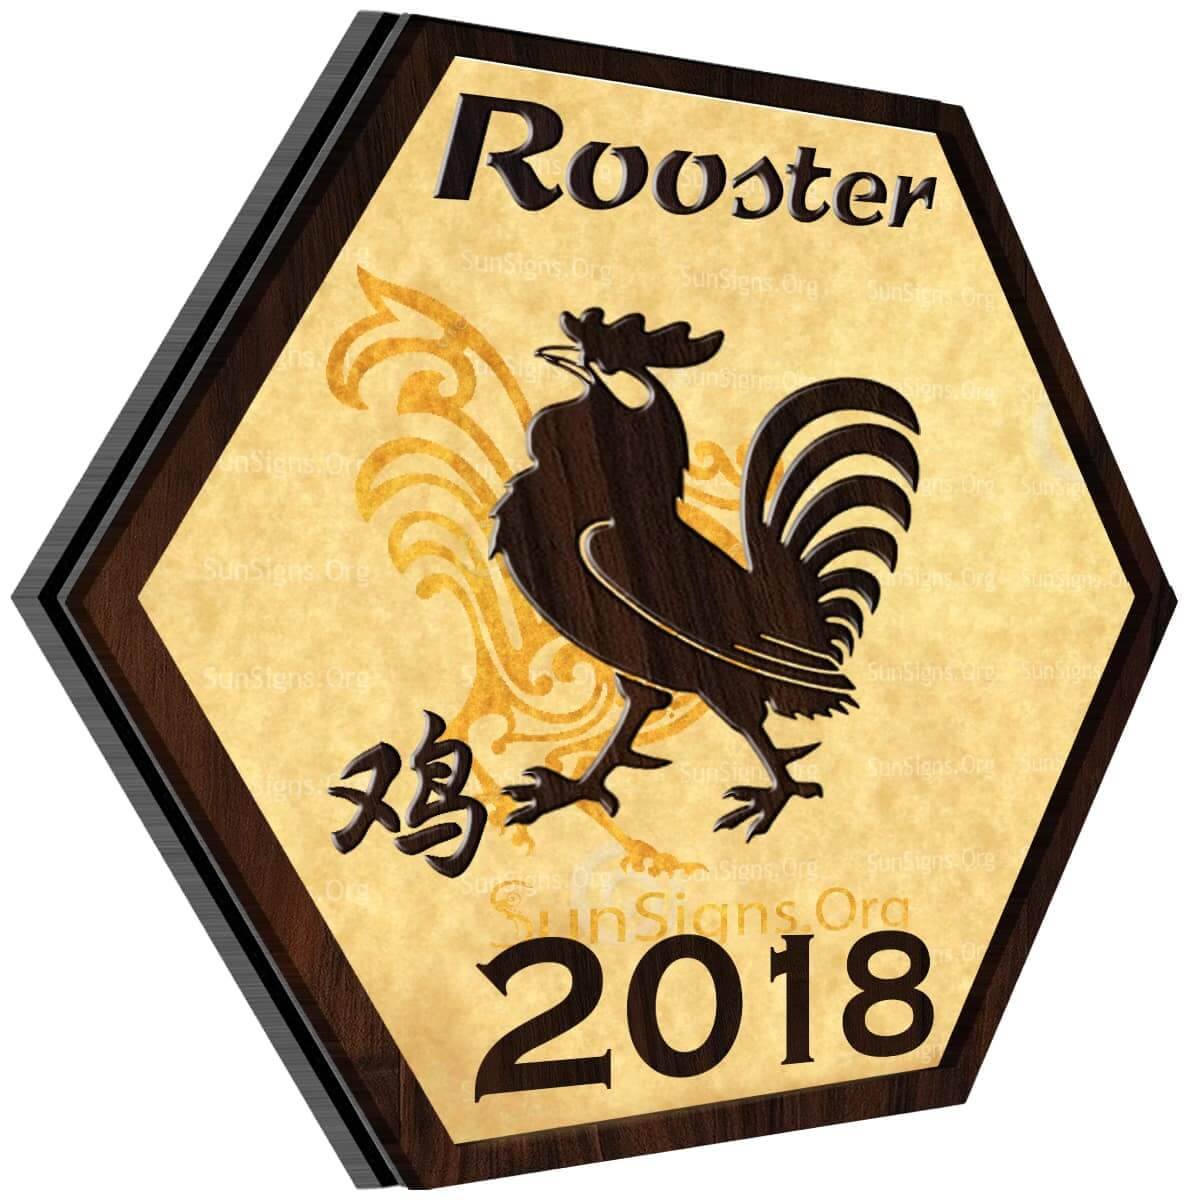 Rooster Horoscope 2018 Predictions For Love, Finance, Career, Health And Family